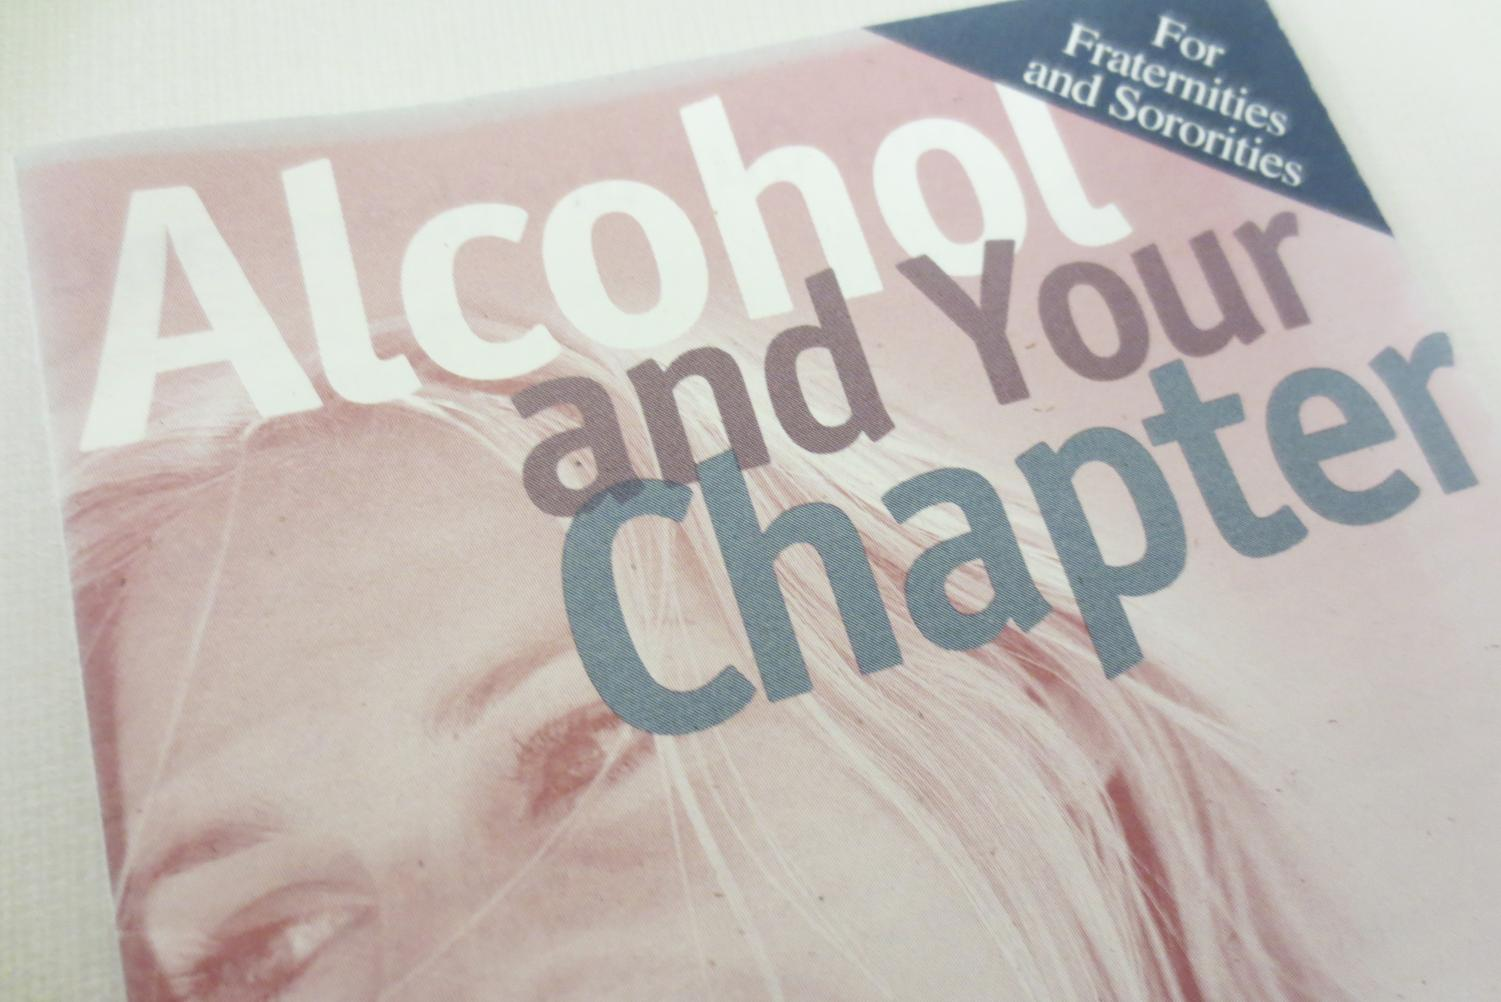 Alcohol is a factor in some hazing incidents. David Burkman, opinion contributor for USA Today,  explained that tasks such as excessive drinking prevail due to a Greek members' mindset that they need to earn their merit in their organization.